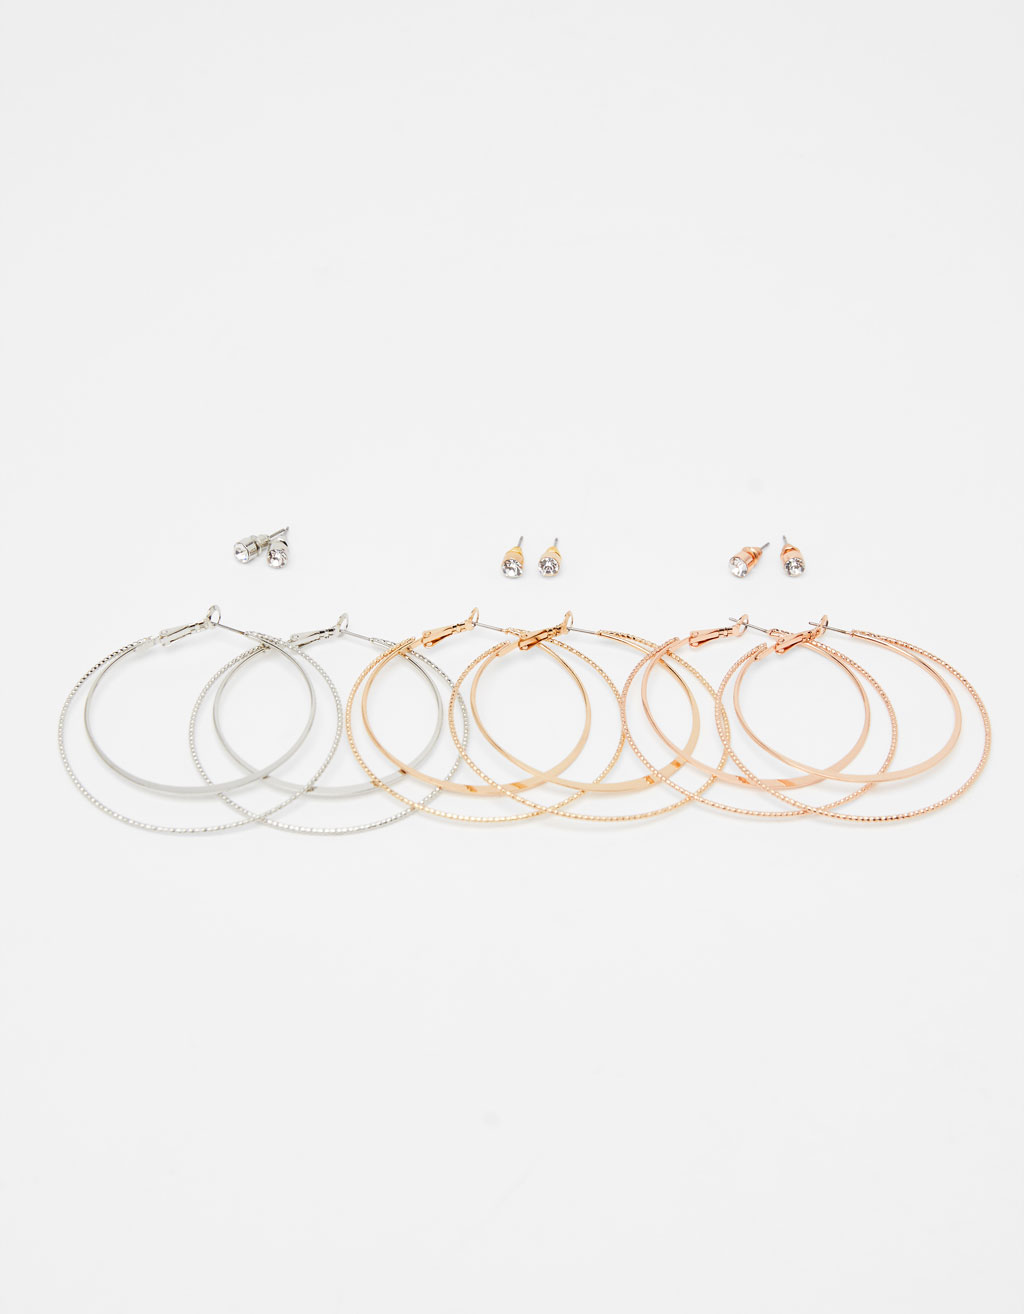 Set of 3 pairs of hoop earrings